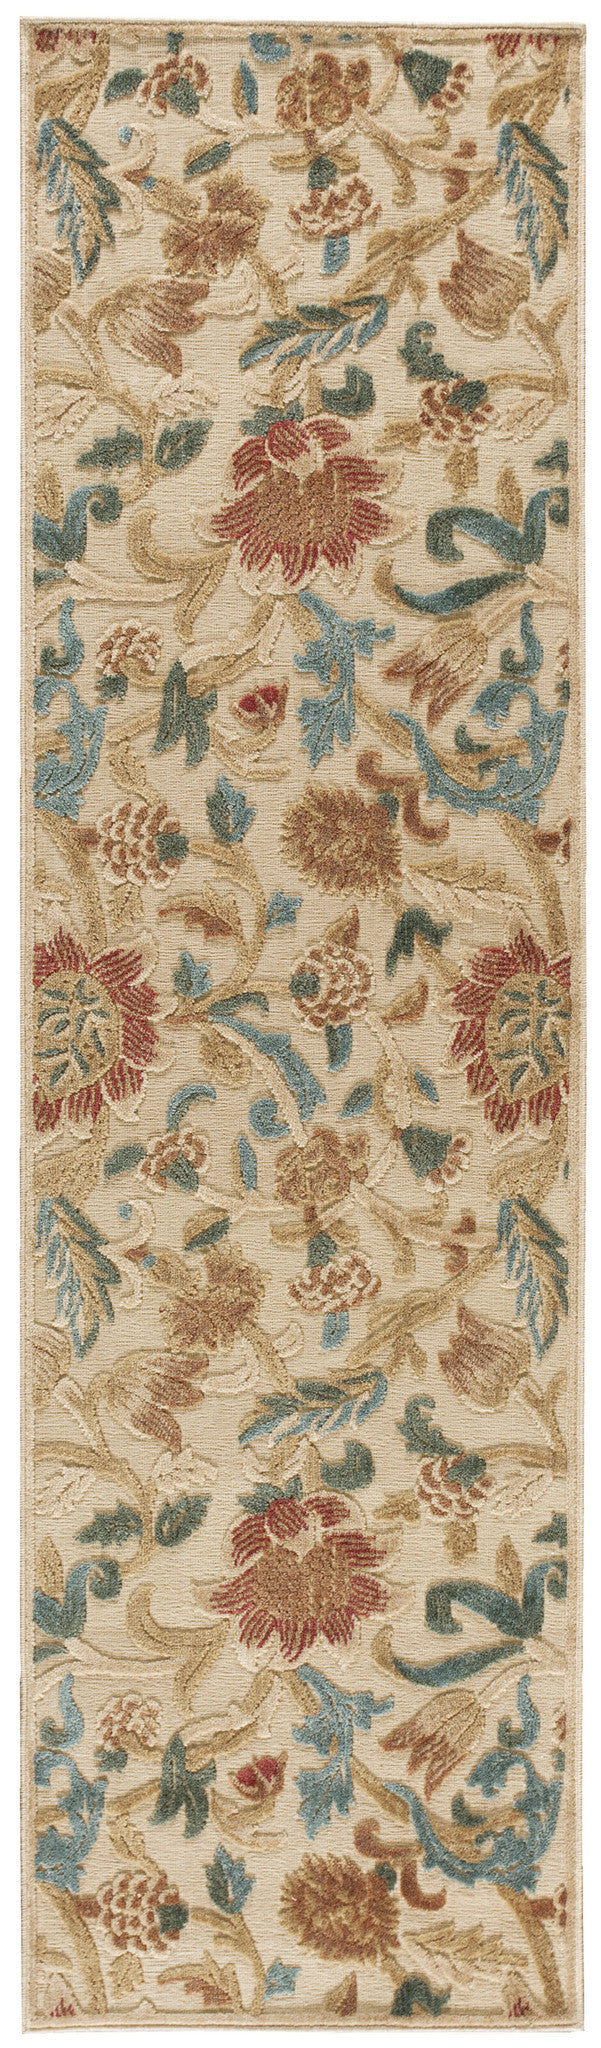 Nourison Graphic Illusions Light Gold Area Rug GIL06 LGD